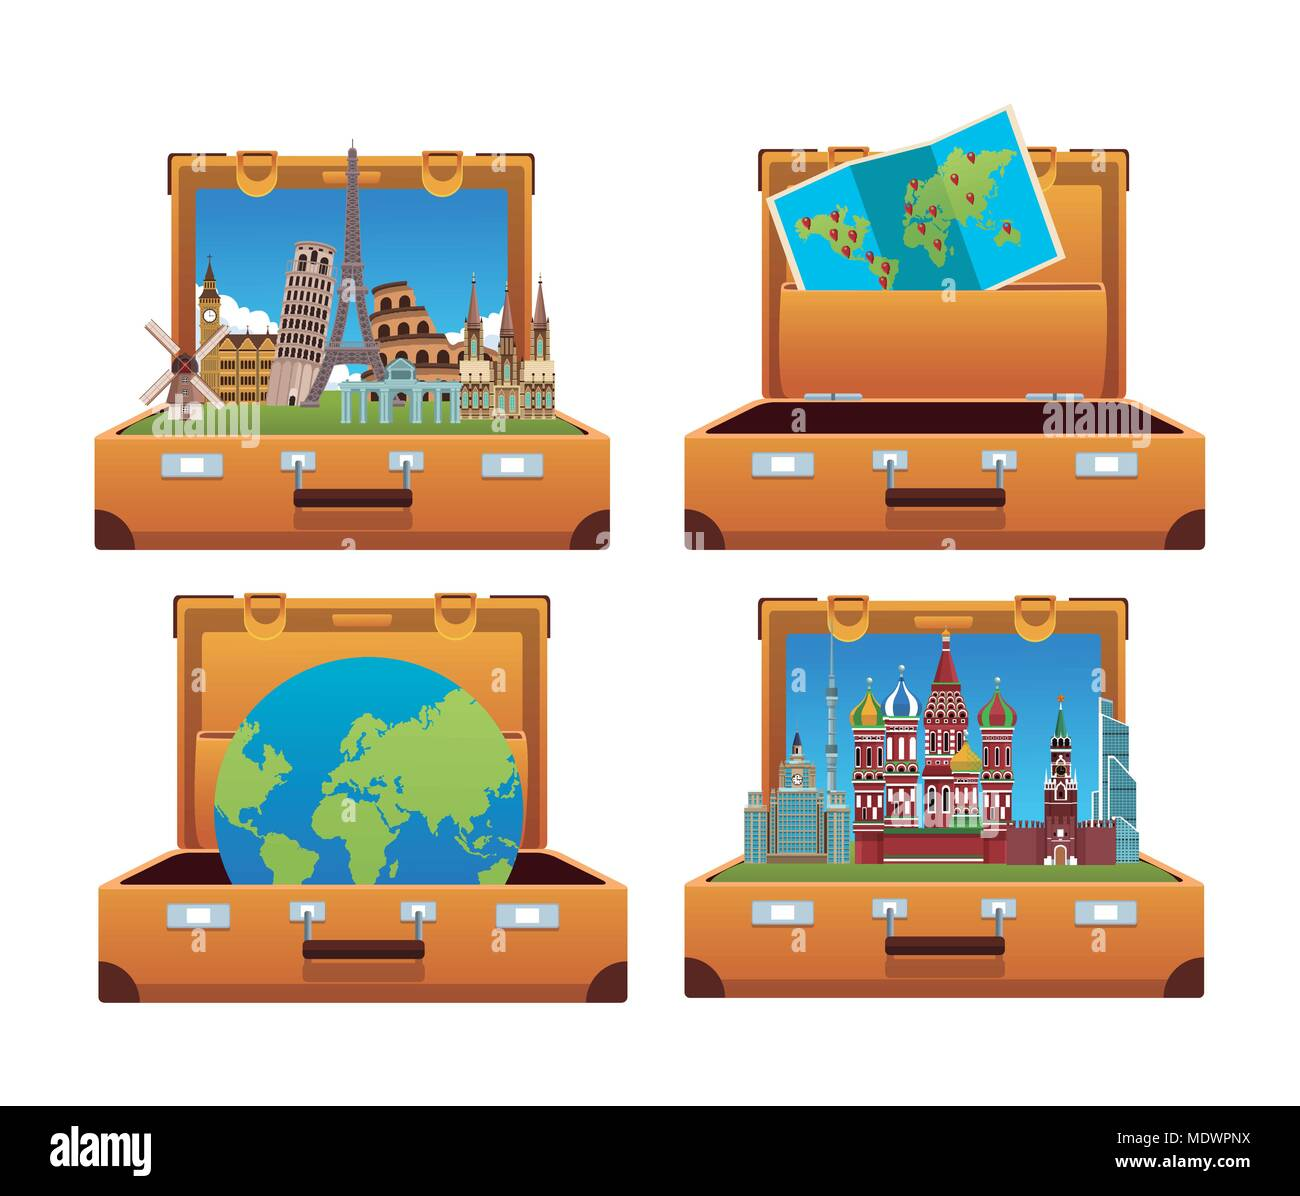 Suitcases open to travel - Stock Image